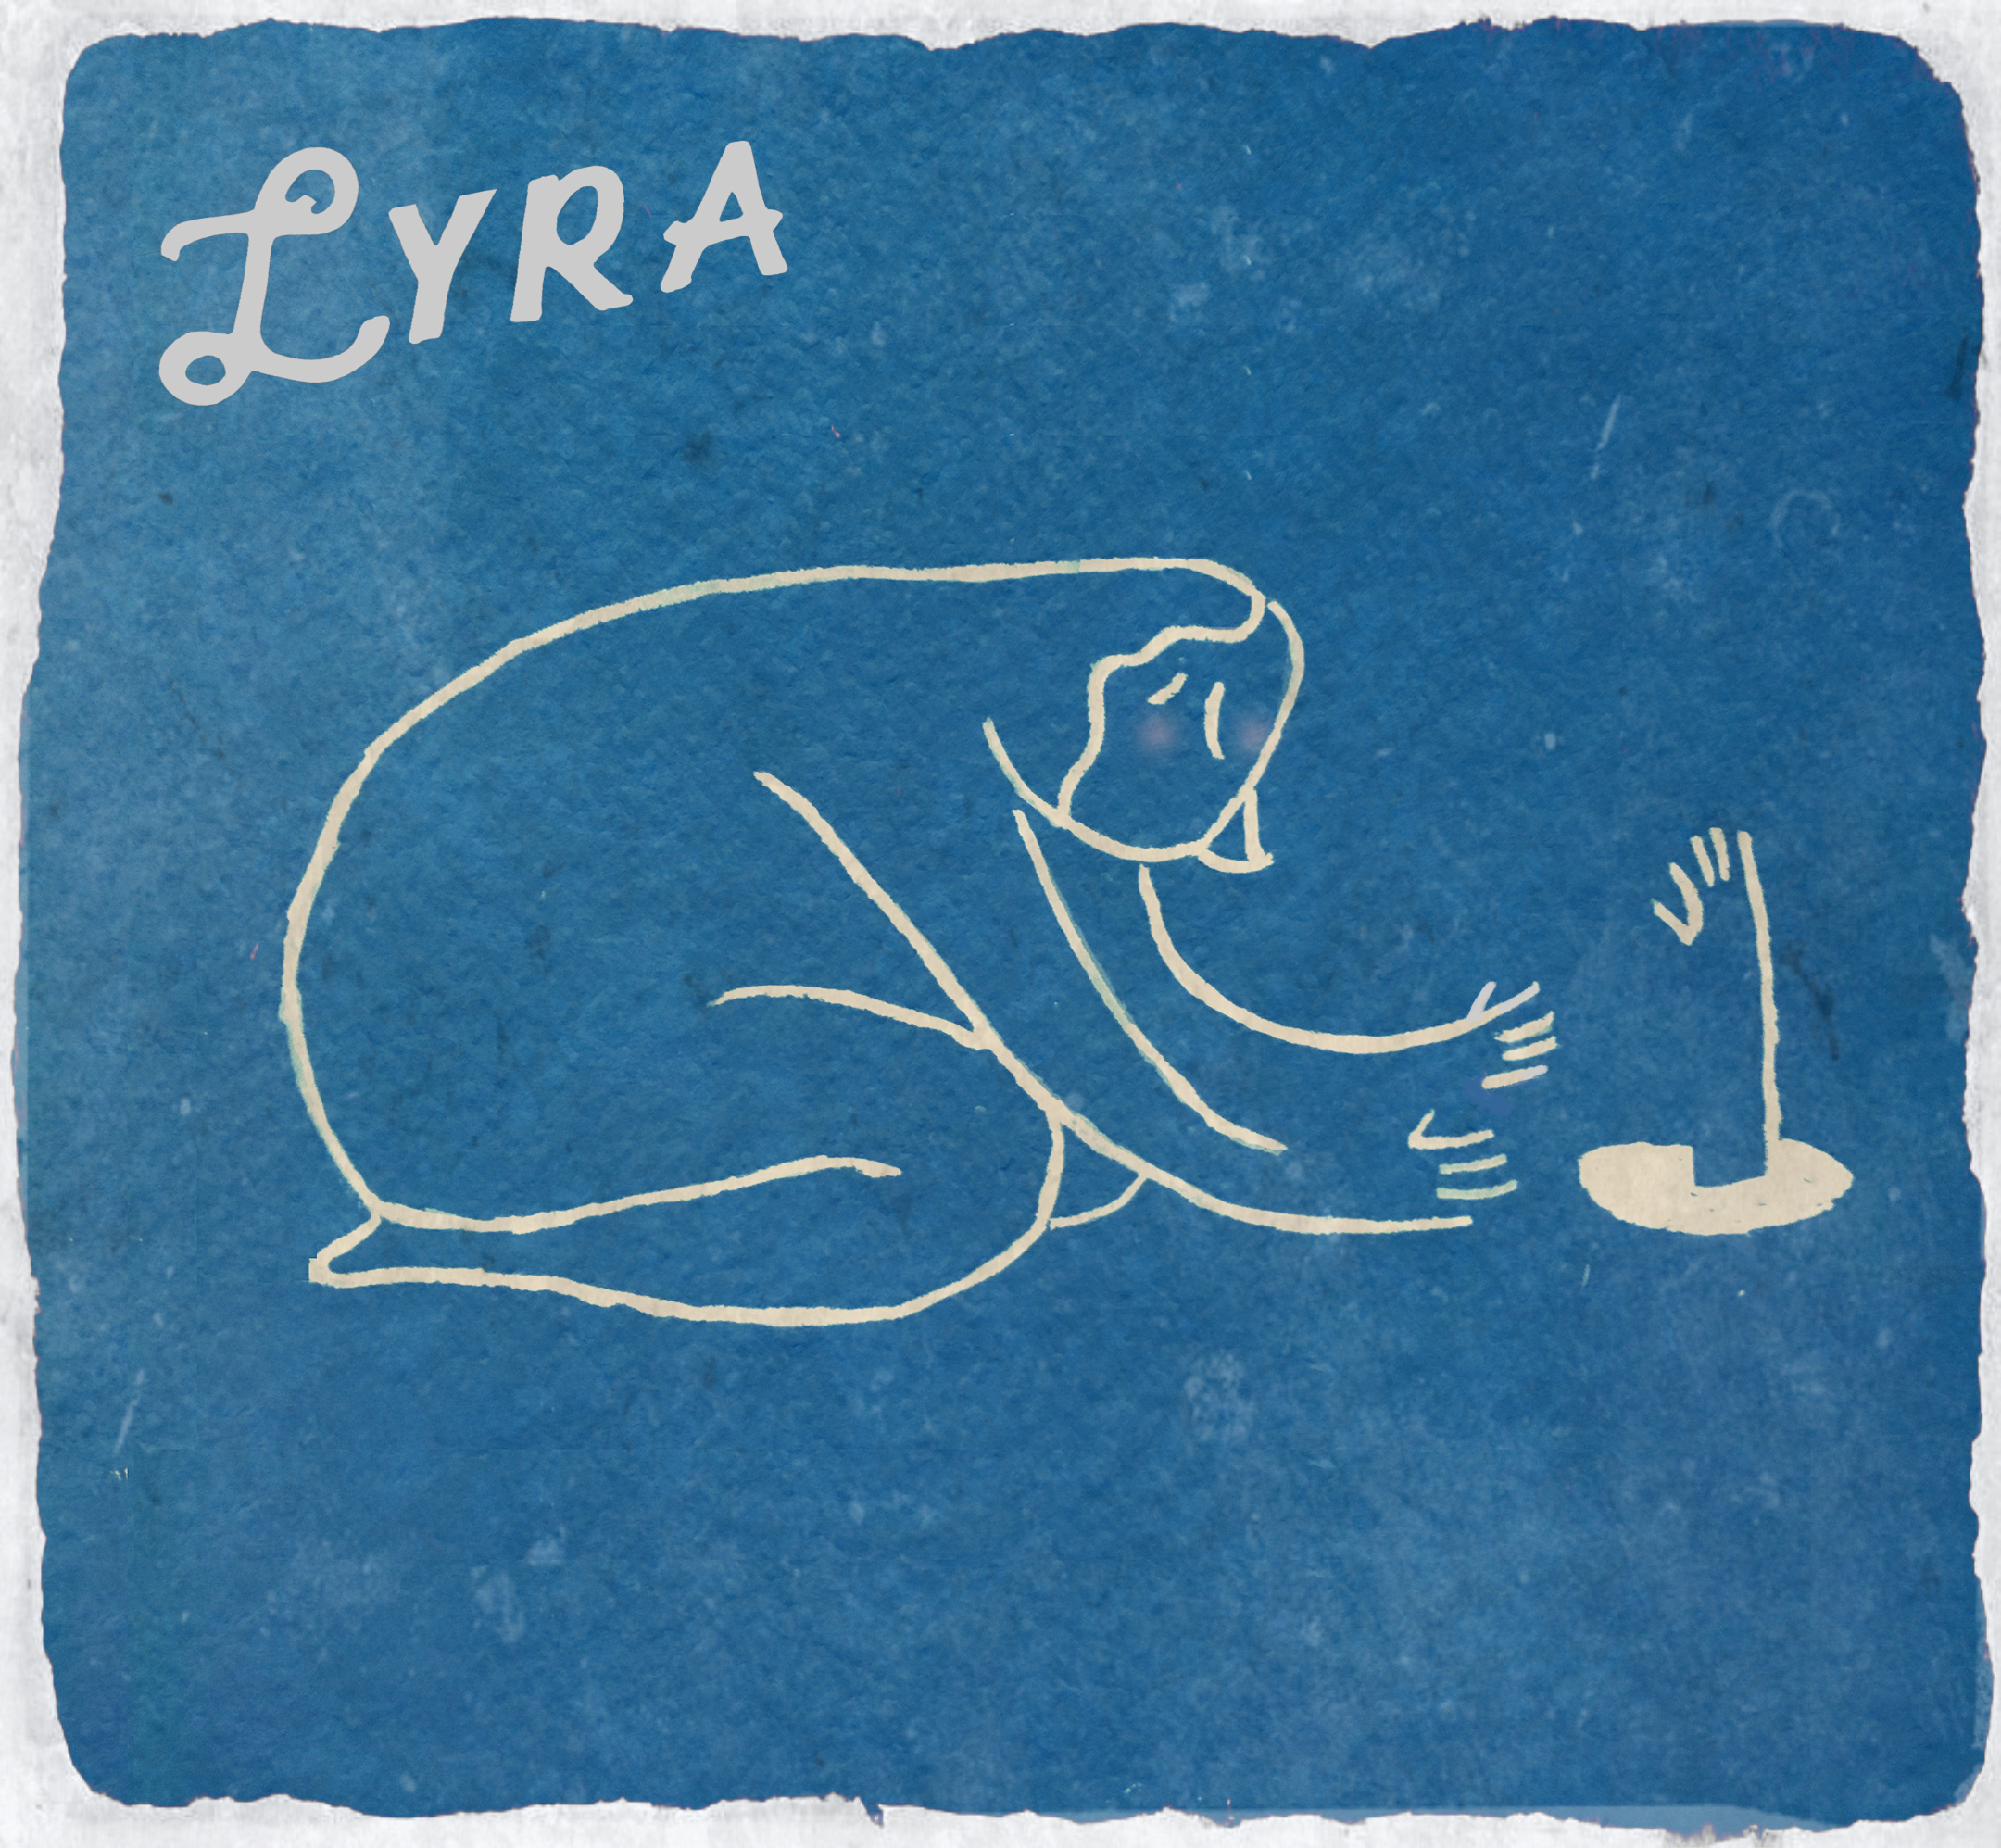 LYRA ALBUM - Blue with Txt (2).png